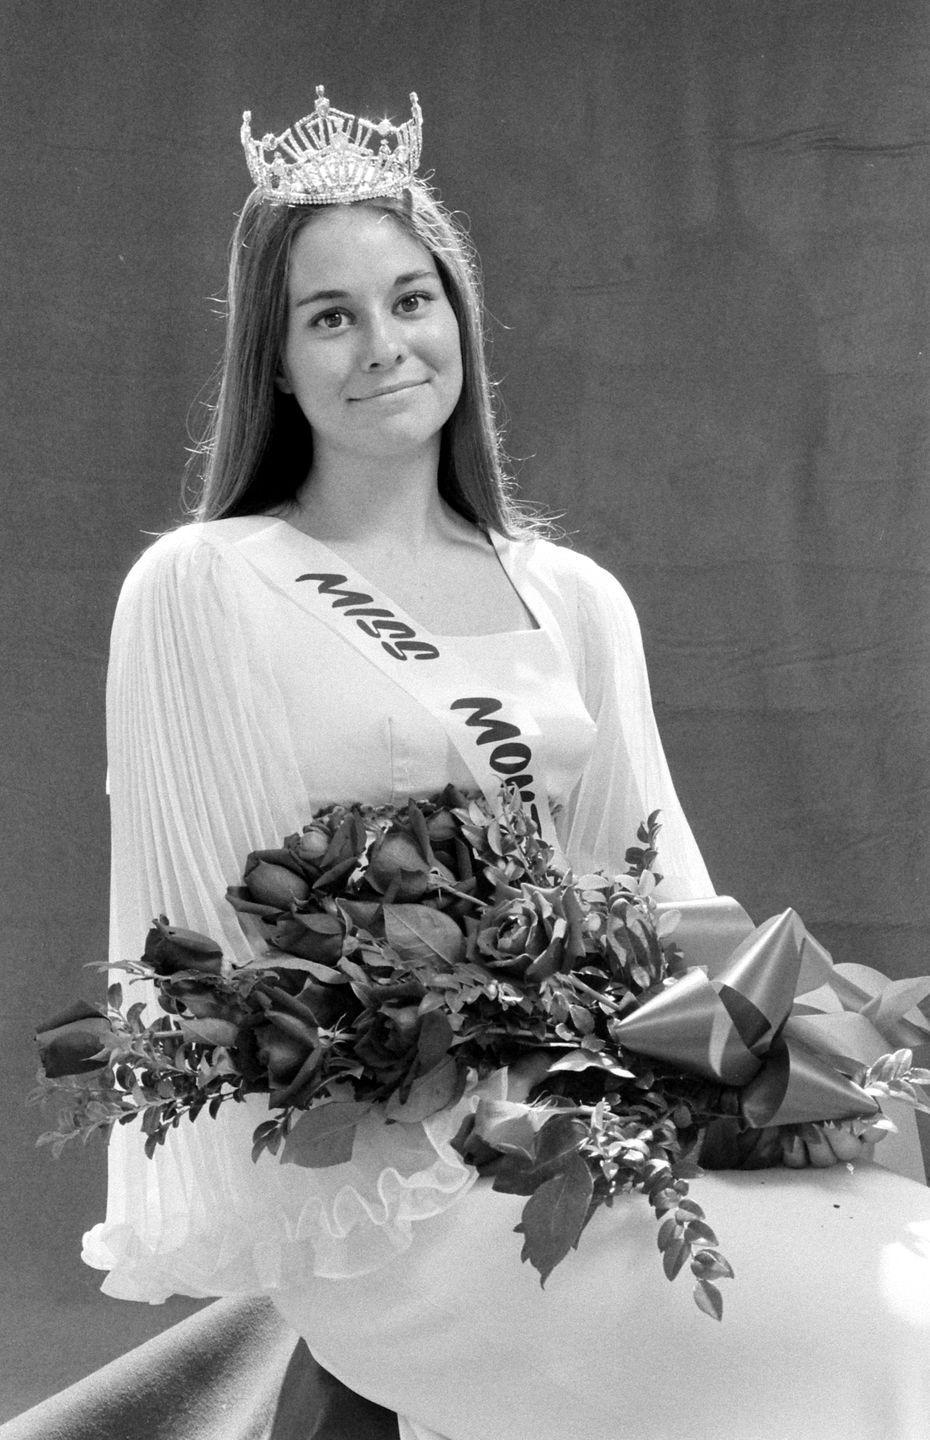 <p>Kathy Huppe from Montana was barred from competing in the Miss America contest in 1970 due to her political views and opposition to the Vietnam War. Huppe's bravery makes her Miss Montana pageant evening gown all the more beautiful.</p>